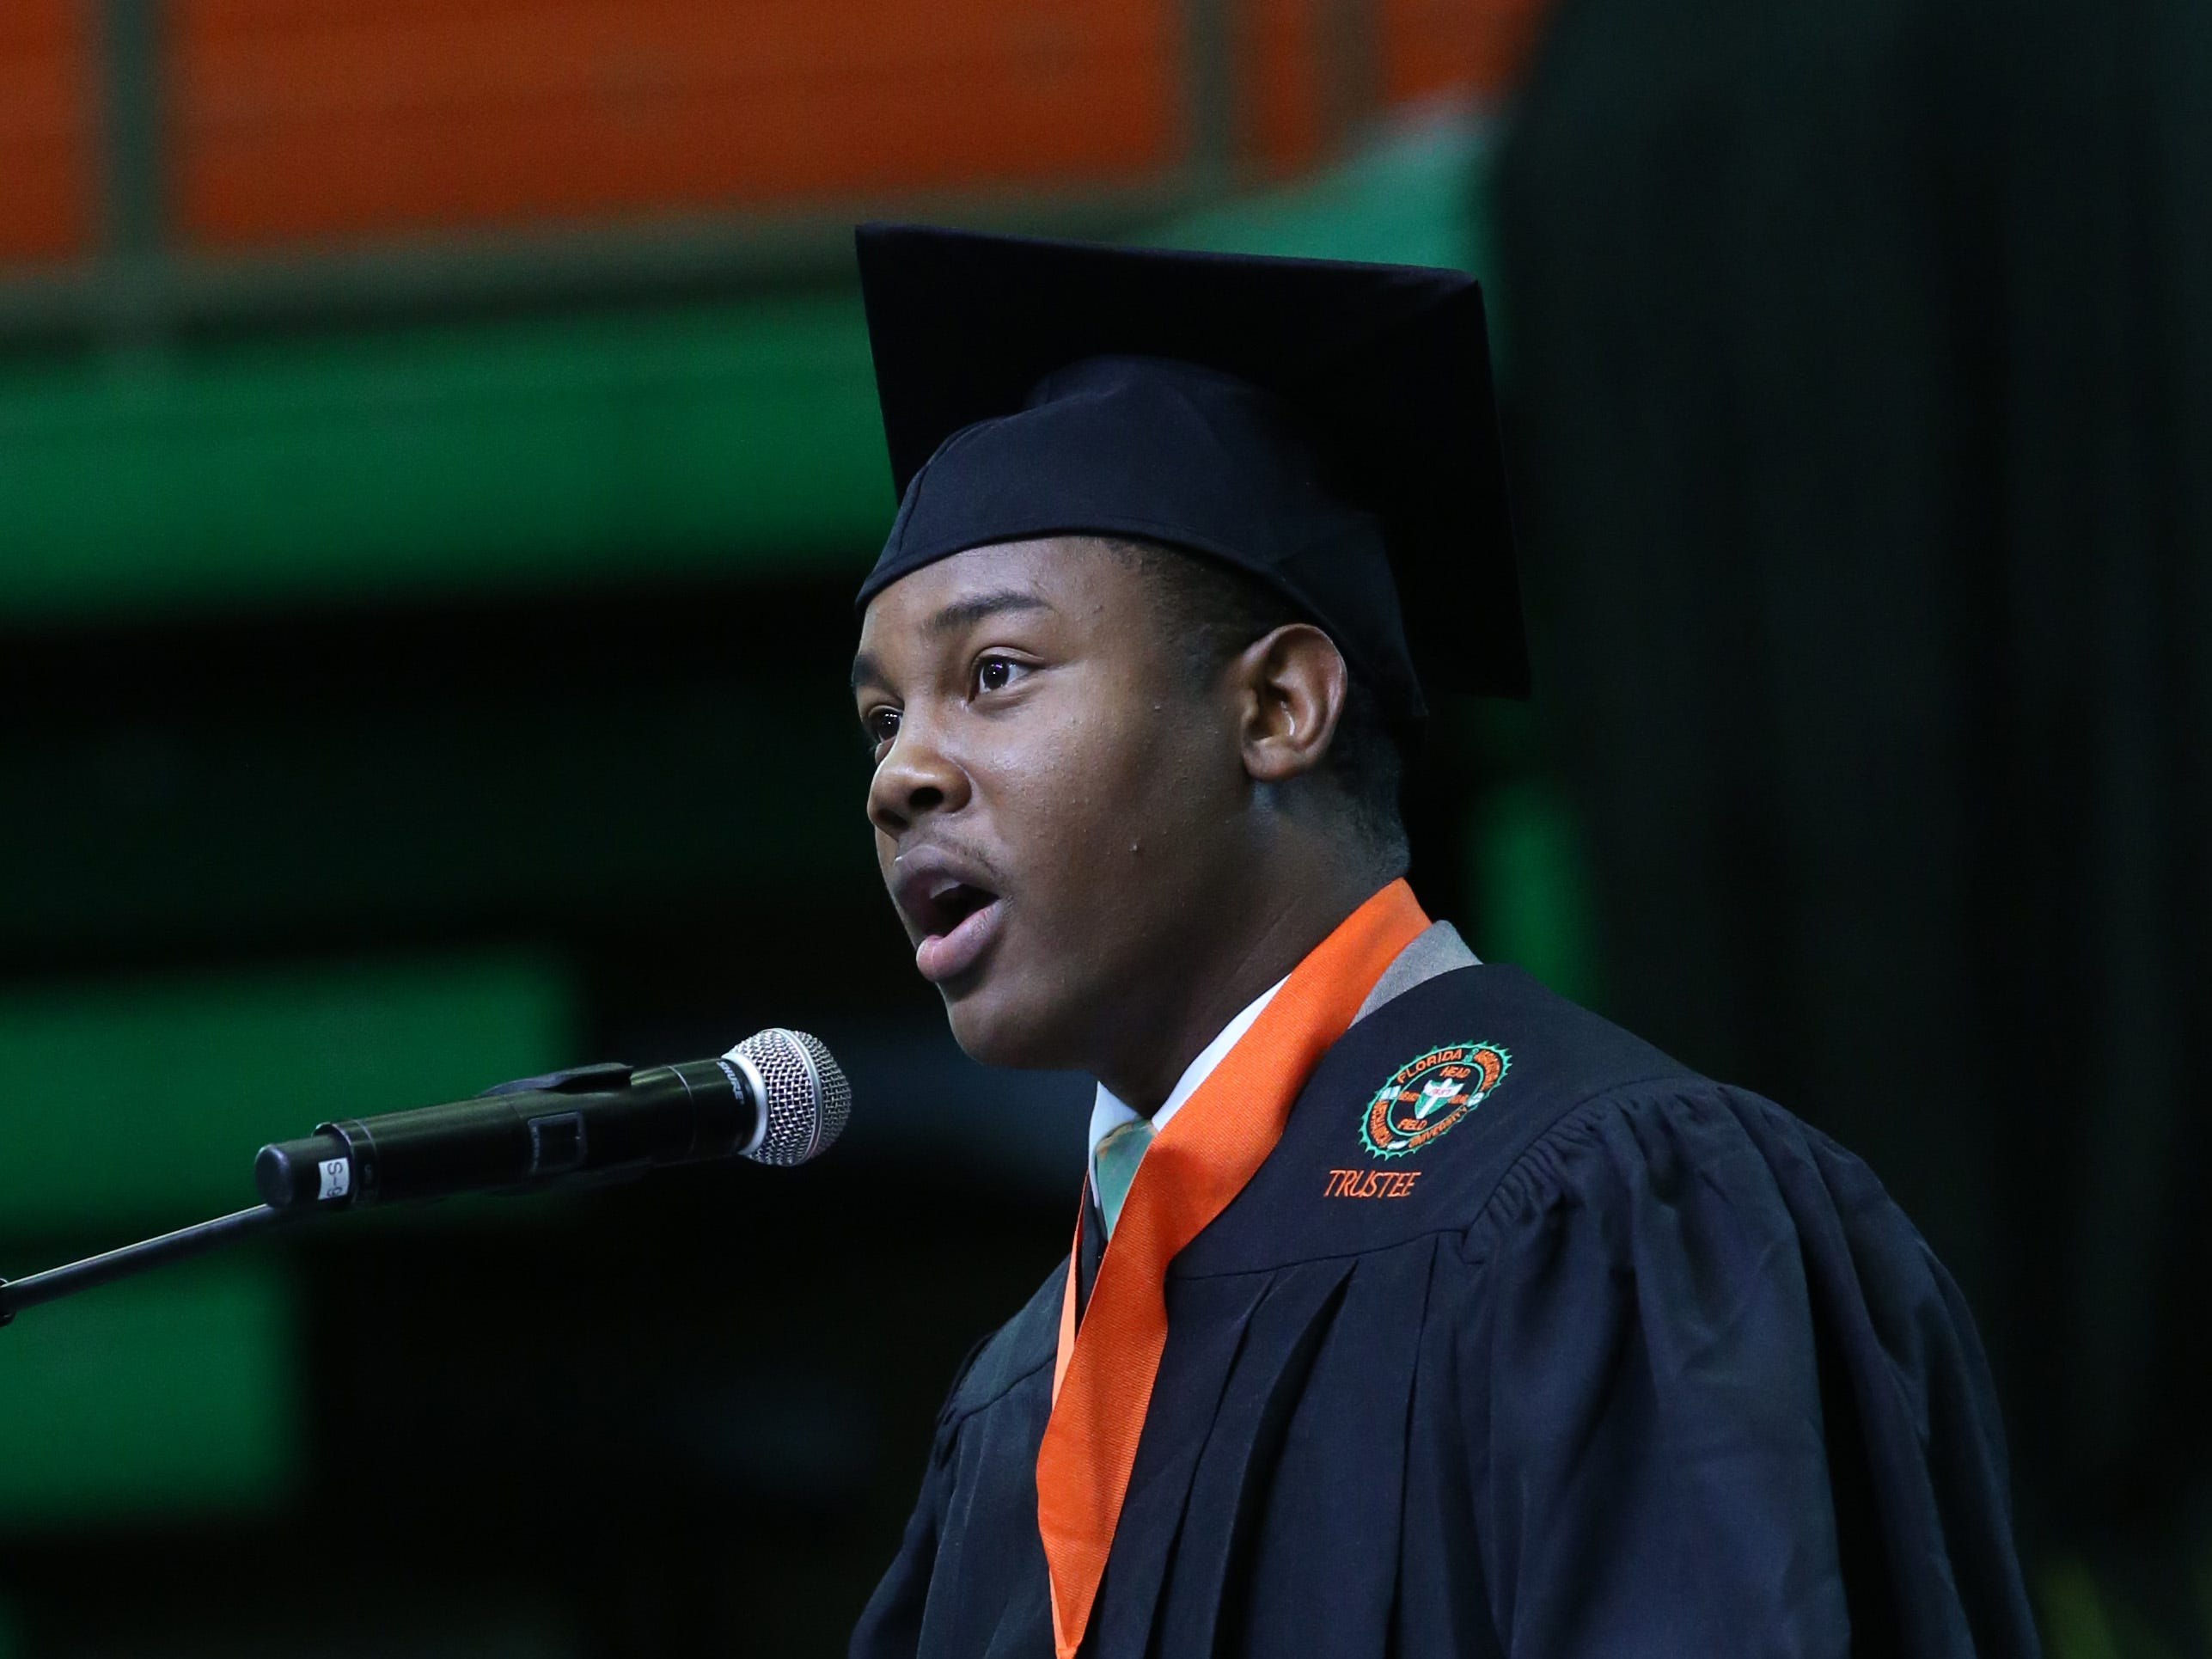 David Jackson, III, President of the Student Government Association, speaks at the 2018 Presidents' Inauguration for Larry Robinson, held in the Lawson Center on Friday, Nov. 9, 2018.